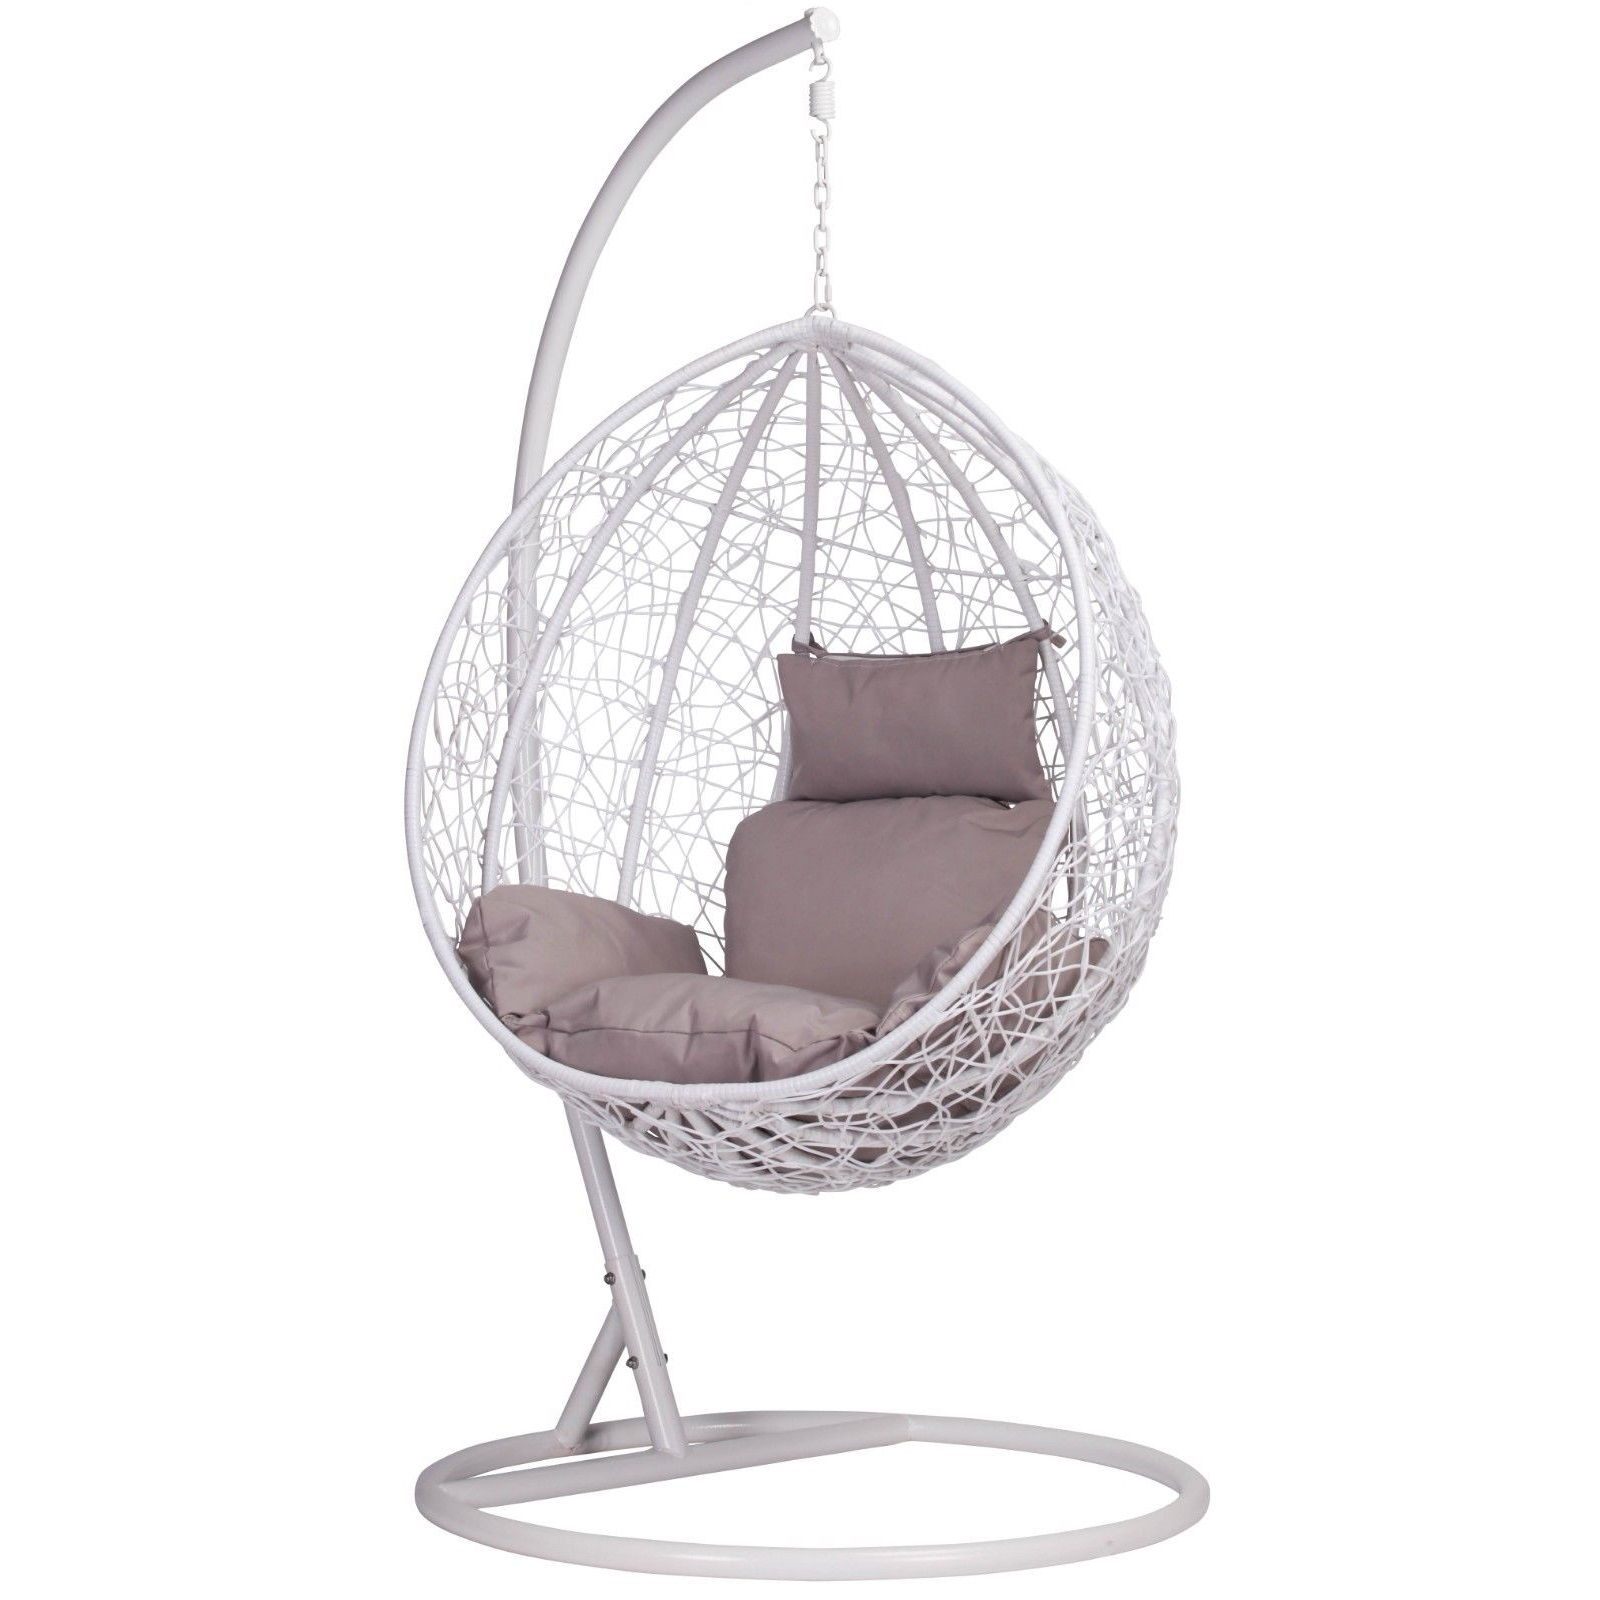 Wicker Egg Chairs For Sale White Rattan Swing Weave Patio Garden Hanging Egg Chair